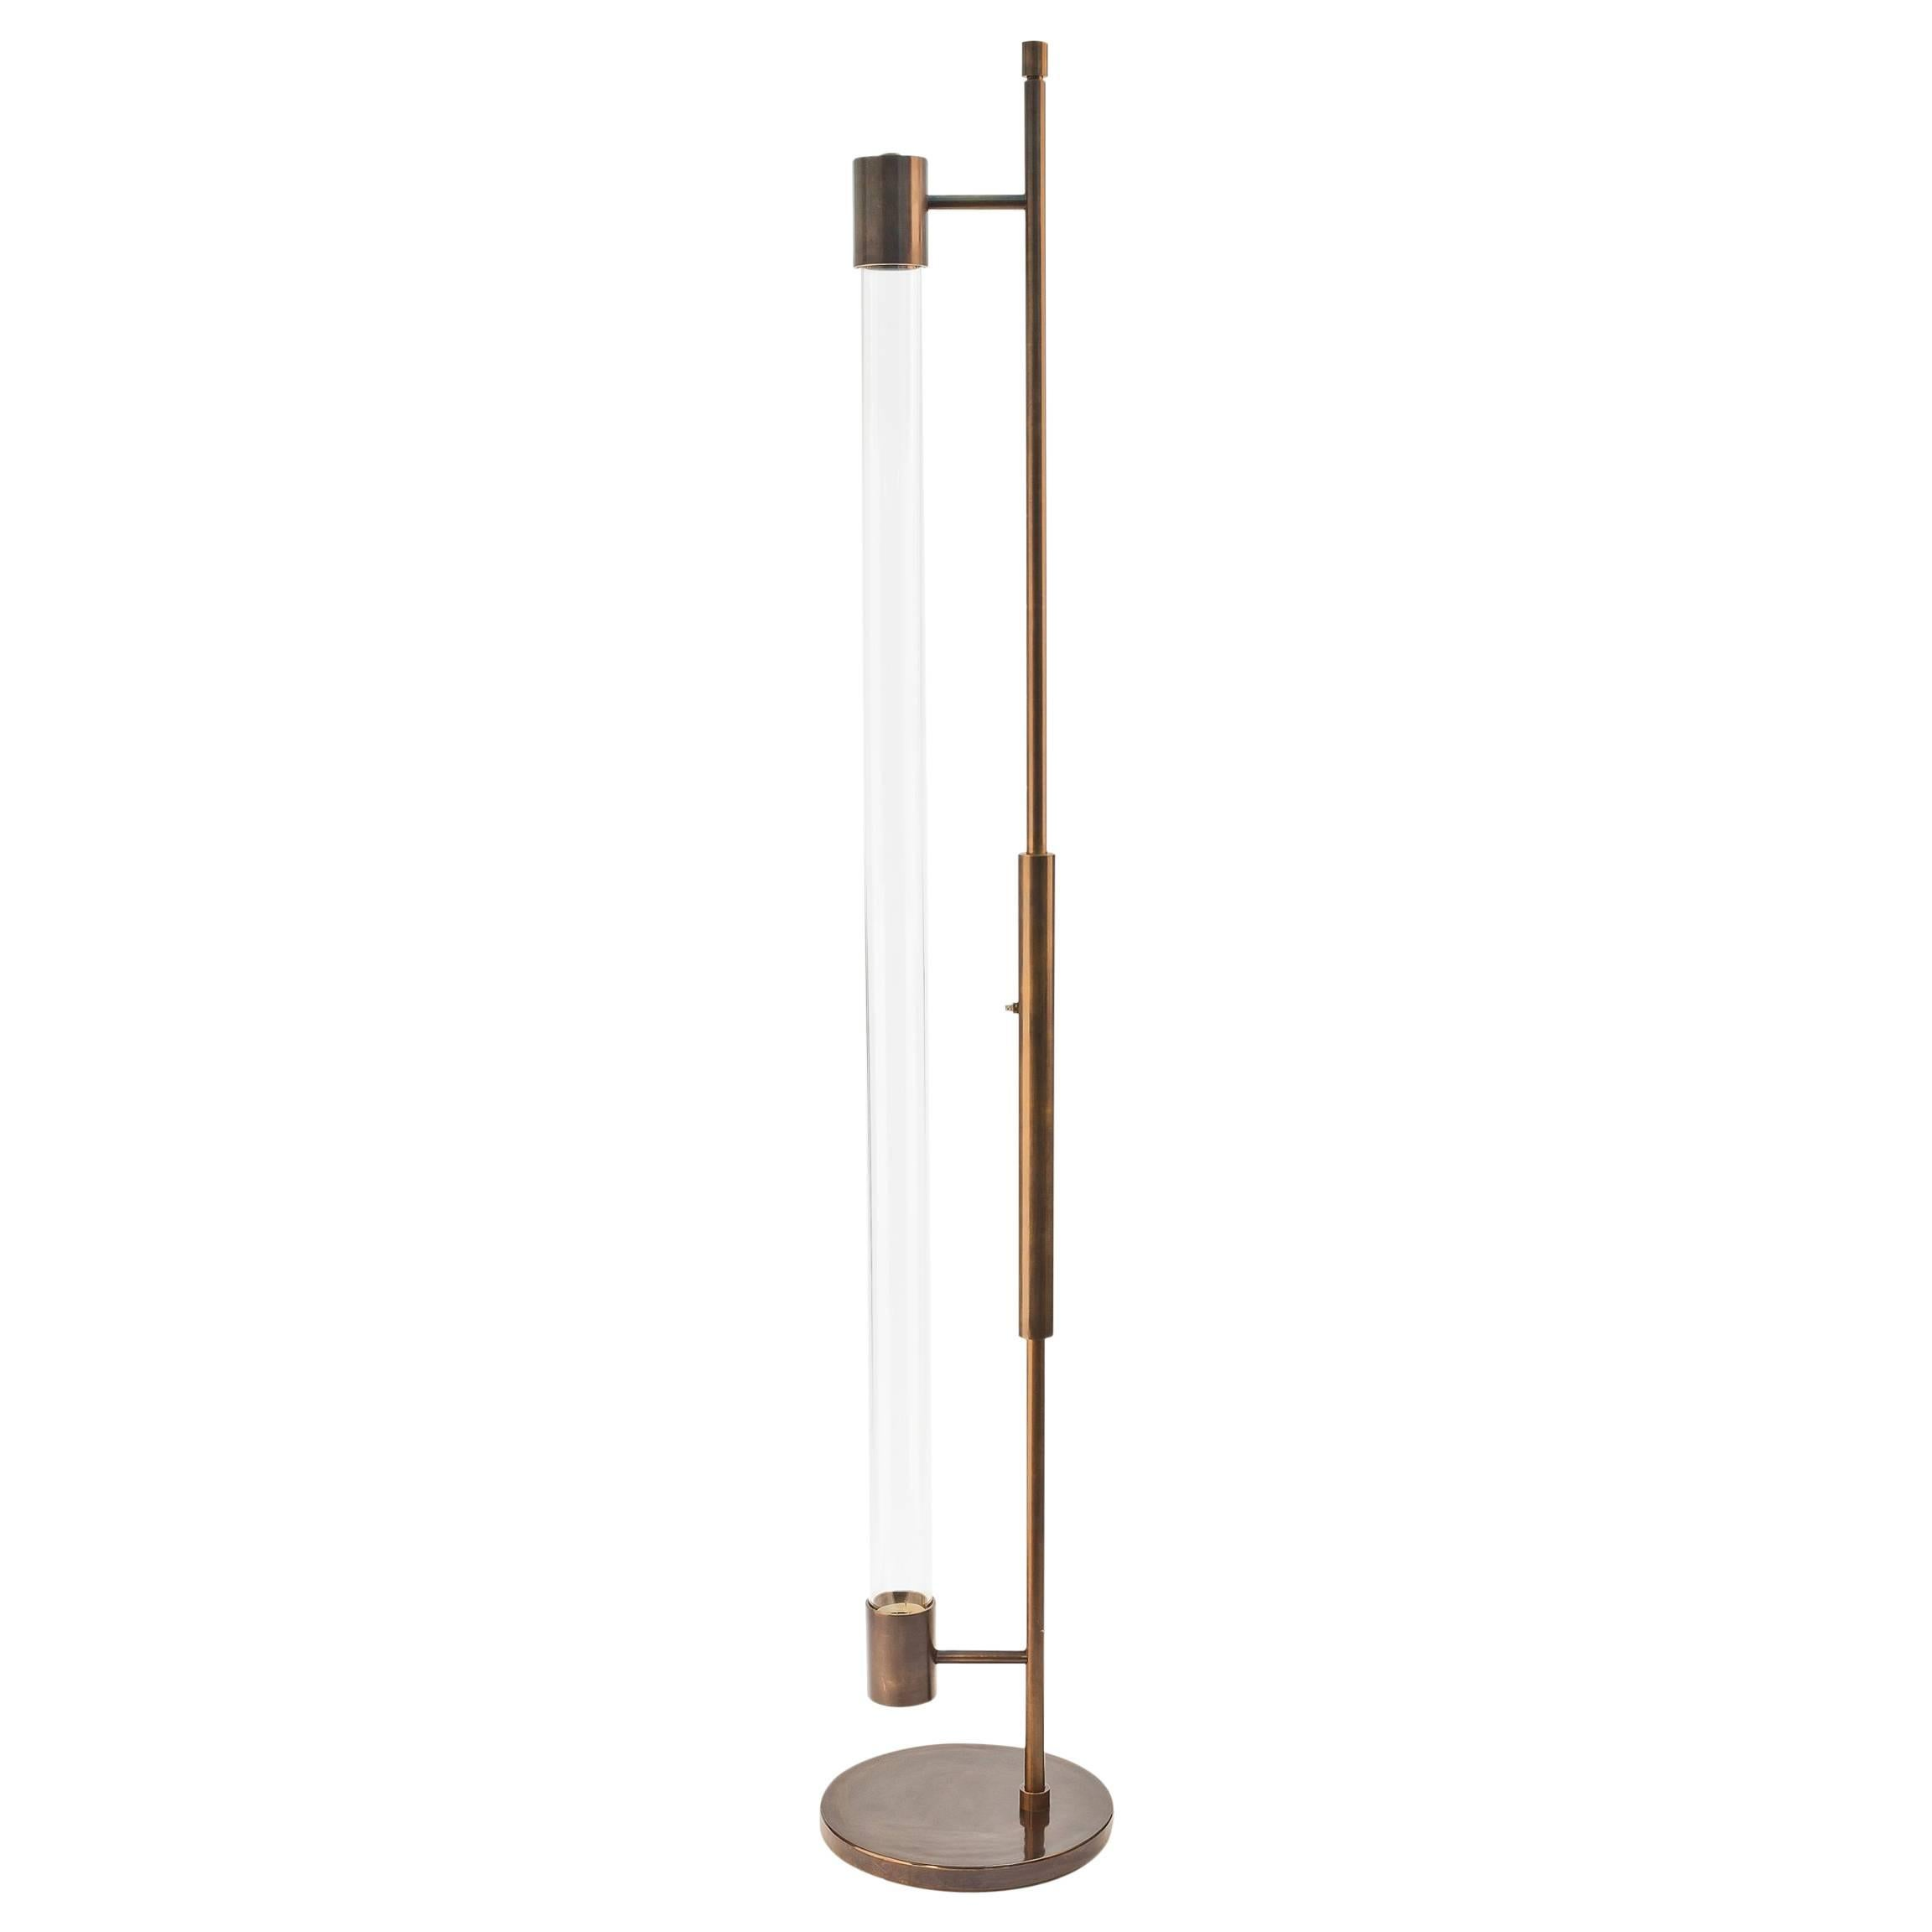 Mid-century Style Floor Lamp in Oil Rubbed Bronze by Carbonell Design